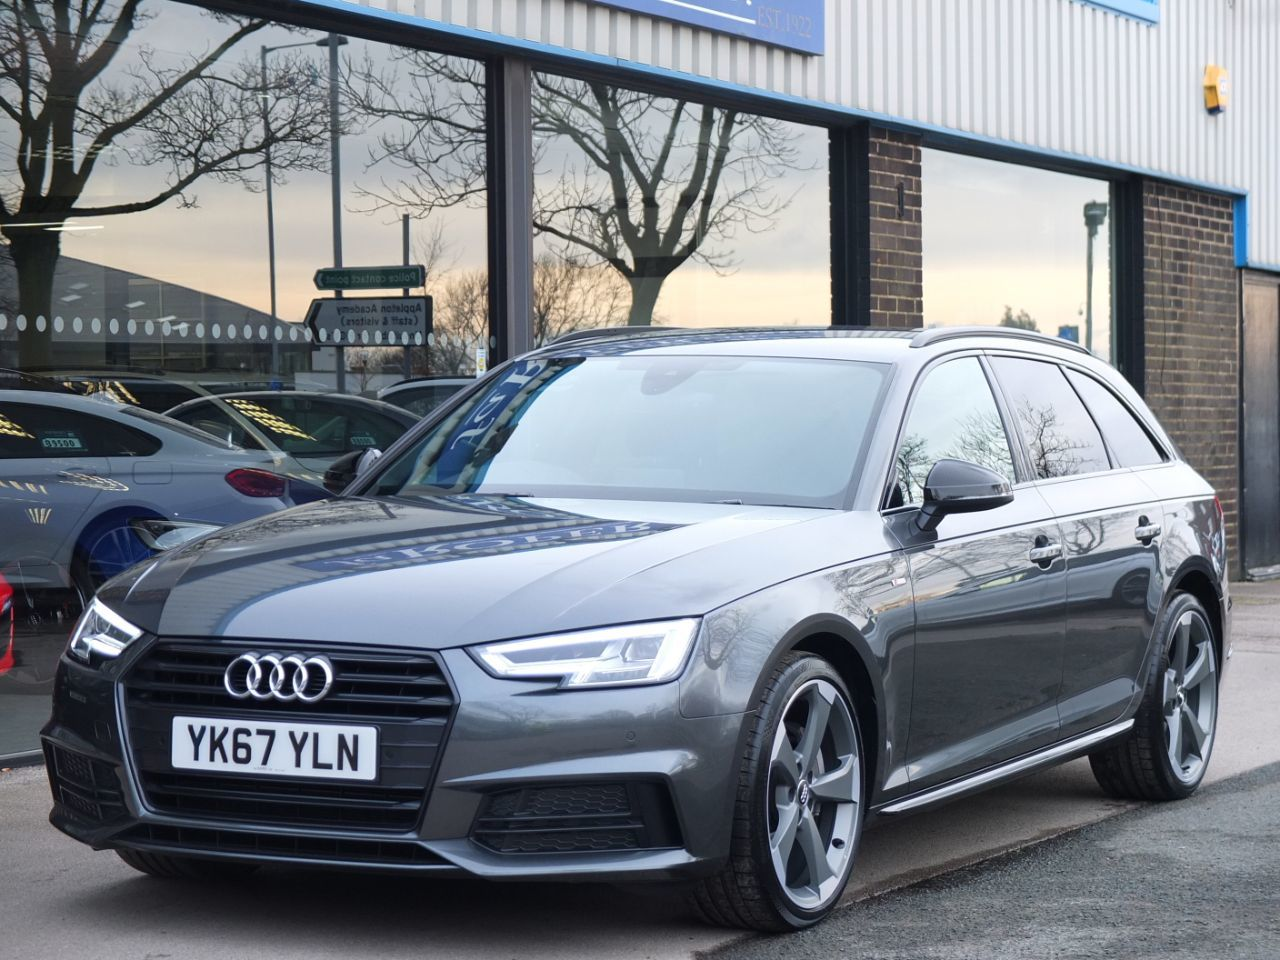 Audi A4 Avant 2.0 TDI S Line Black Edition S tronic 190ps Estate Diesel Daytona Grey MetallicAudi A4 Avant 2.0 TDI S Line Black Edition S tronic 190ps Estate Diesel Daytona Grey Metallic at fa Roper Ltd Bradford